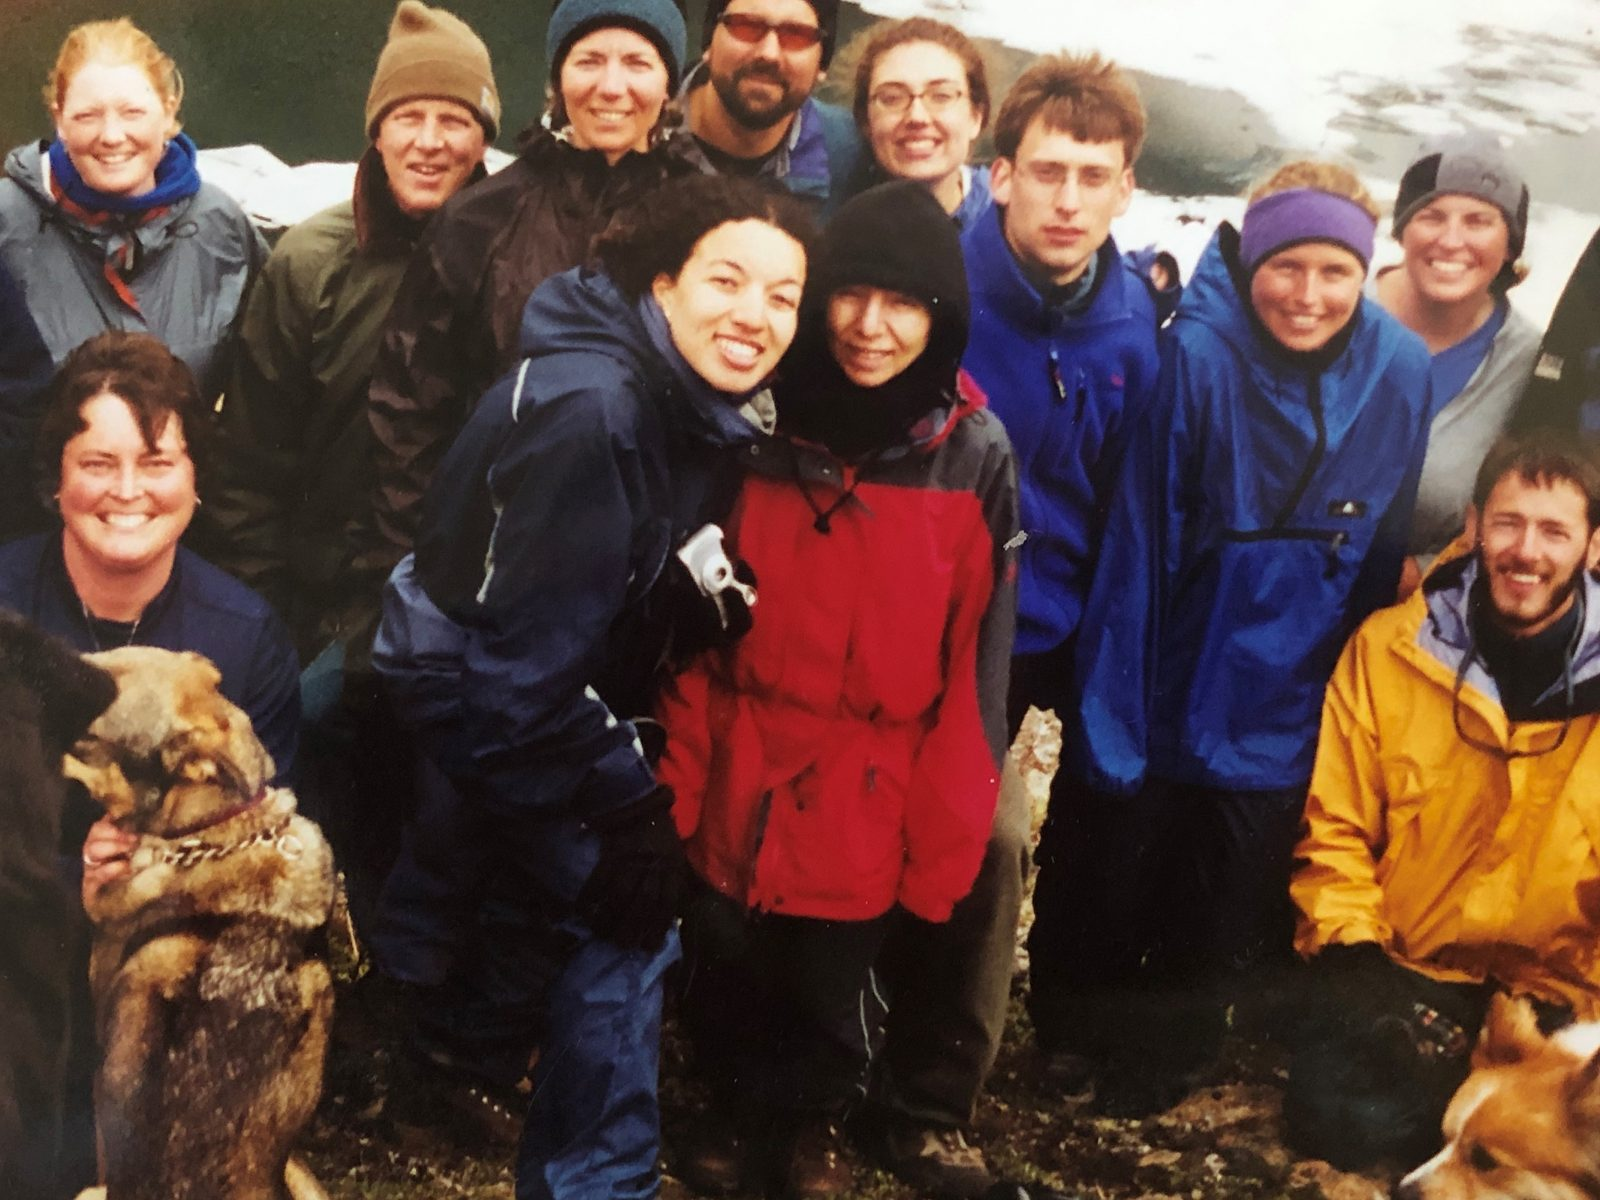 The Trustees for Alaska gang from the 1990s.